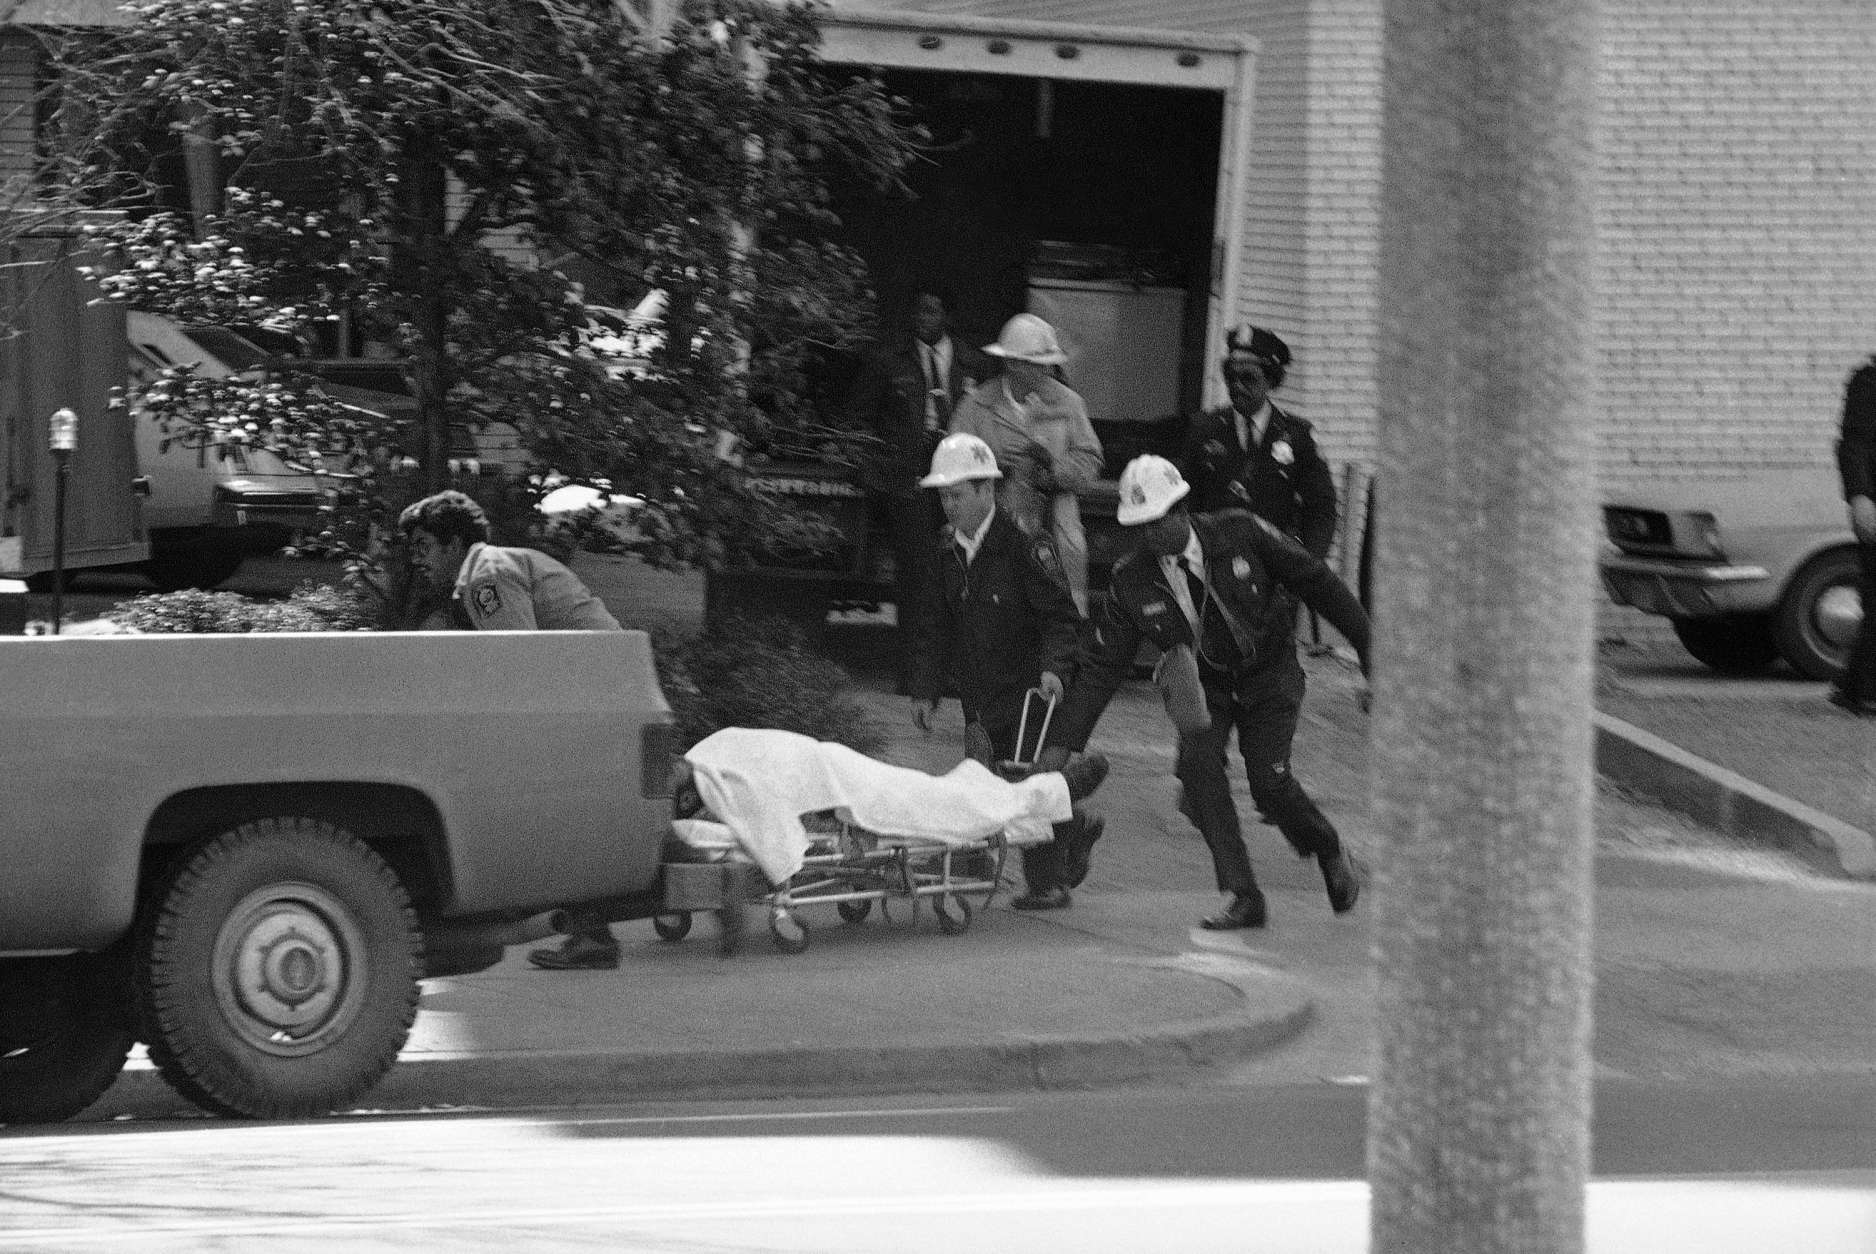 Rescue workers remove an injured person from B'Nai B'Rith is Washington on Wednesday, March 9, 1977. Armed gunmen are holding hostages inside the building, one of three locations in the nation's capital where hostages have been taken. (AP Photo)